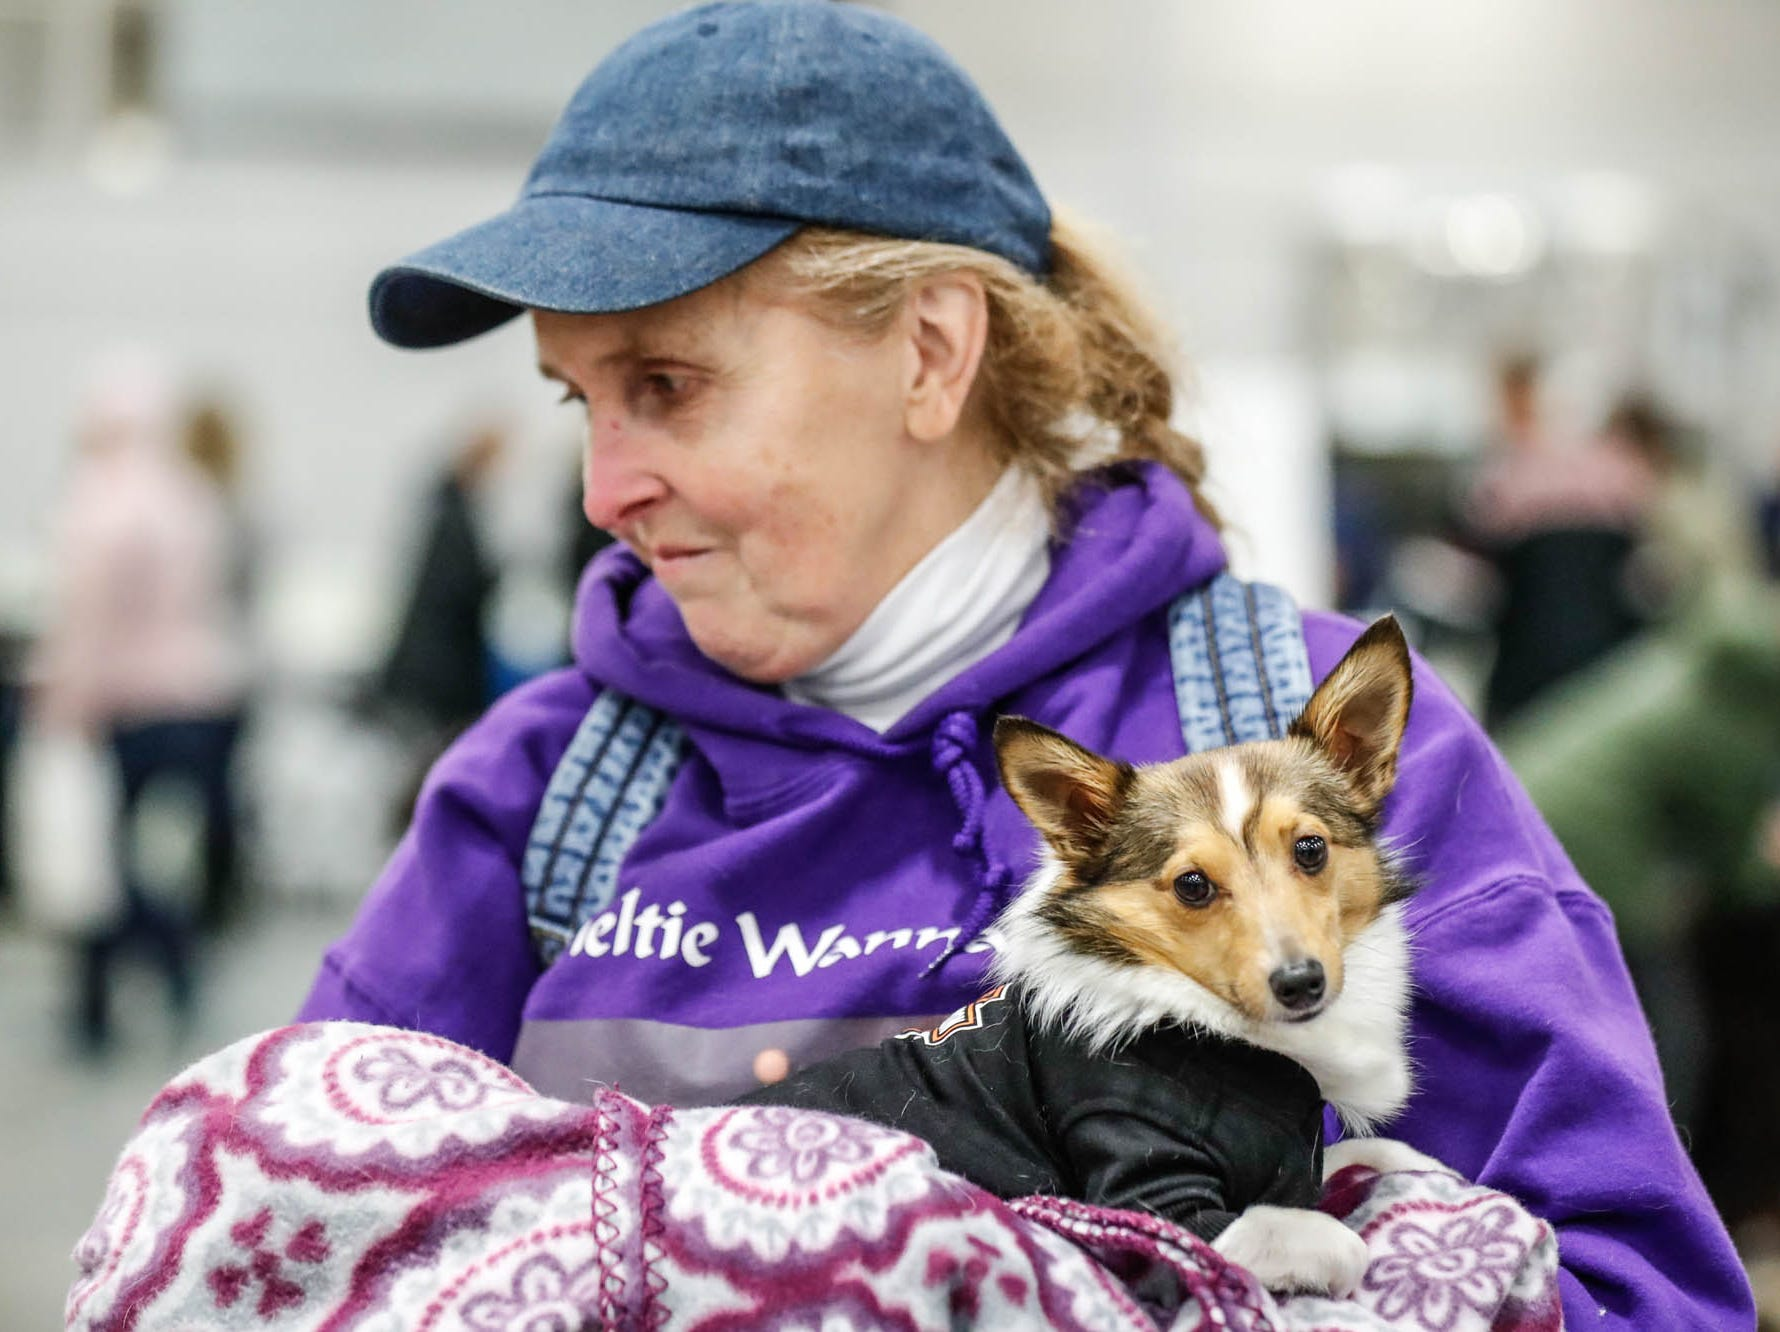 Rebecca Coleman holds her dog Patches at the Great Indy Pet Expo, held at the Indiana State Fairgrounds on Sat. Nov. 10, 2018.